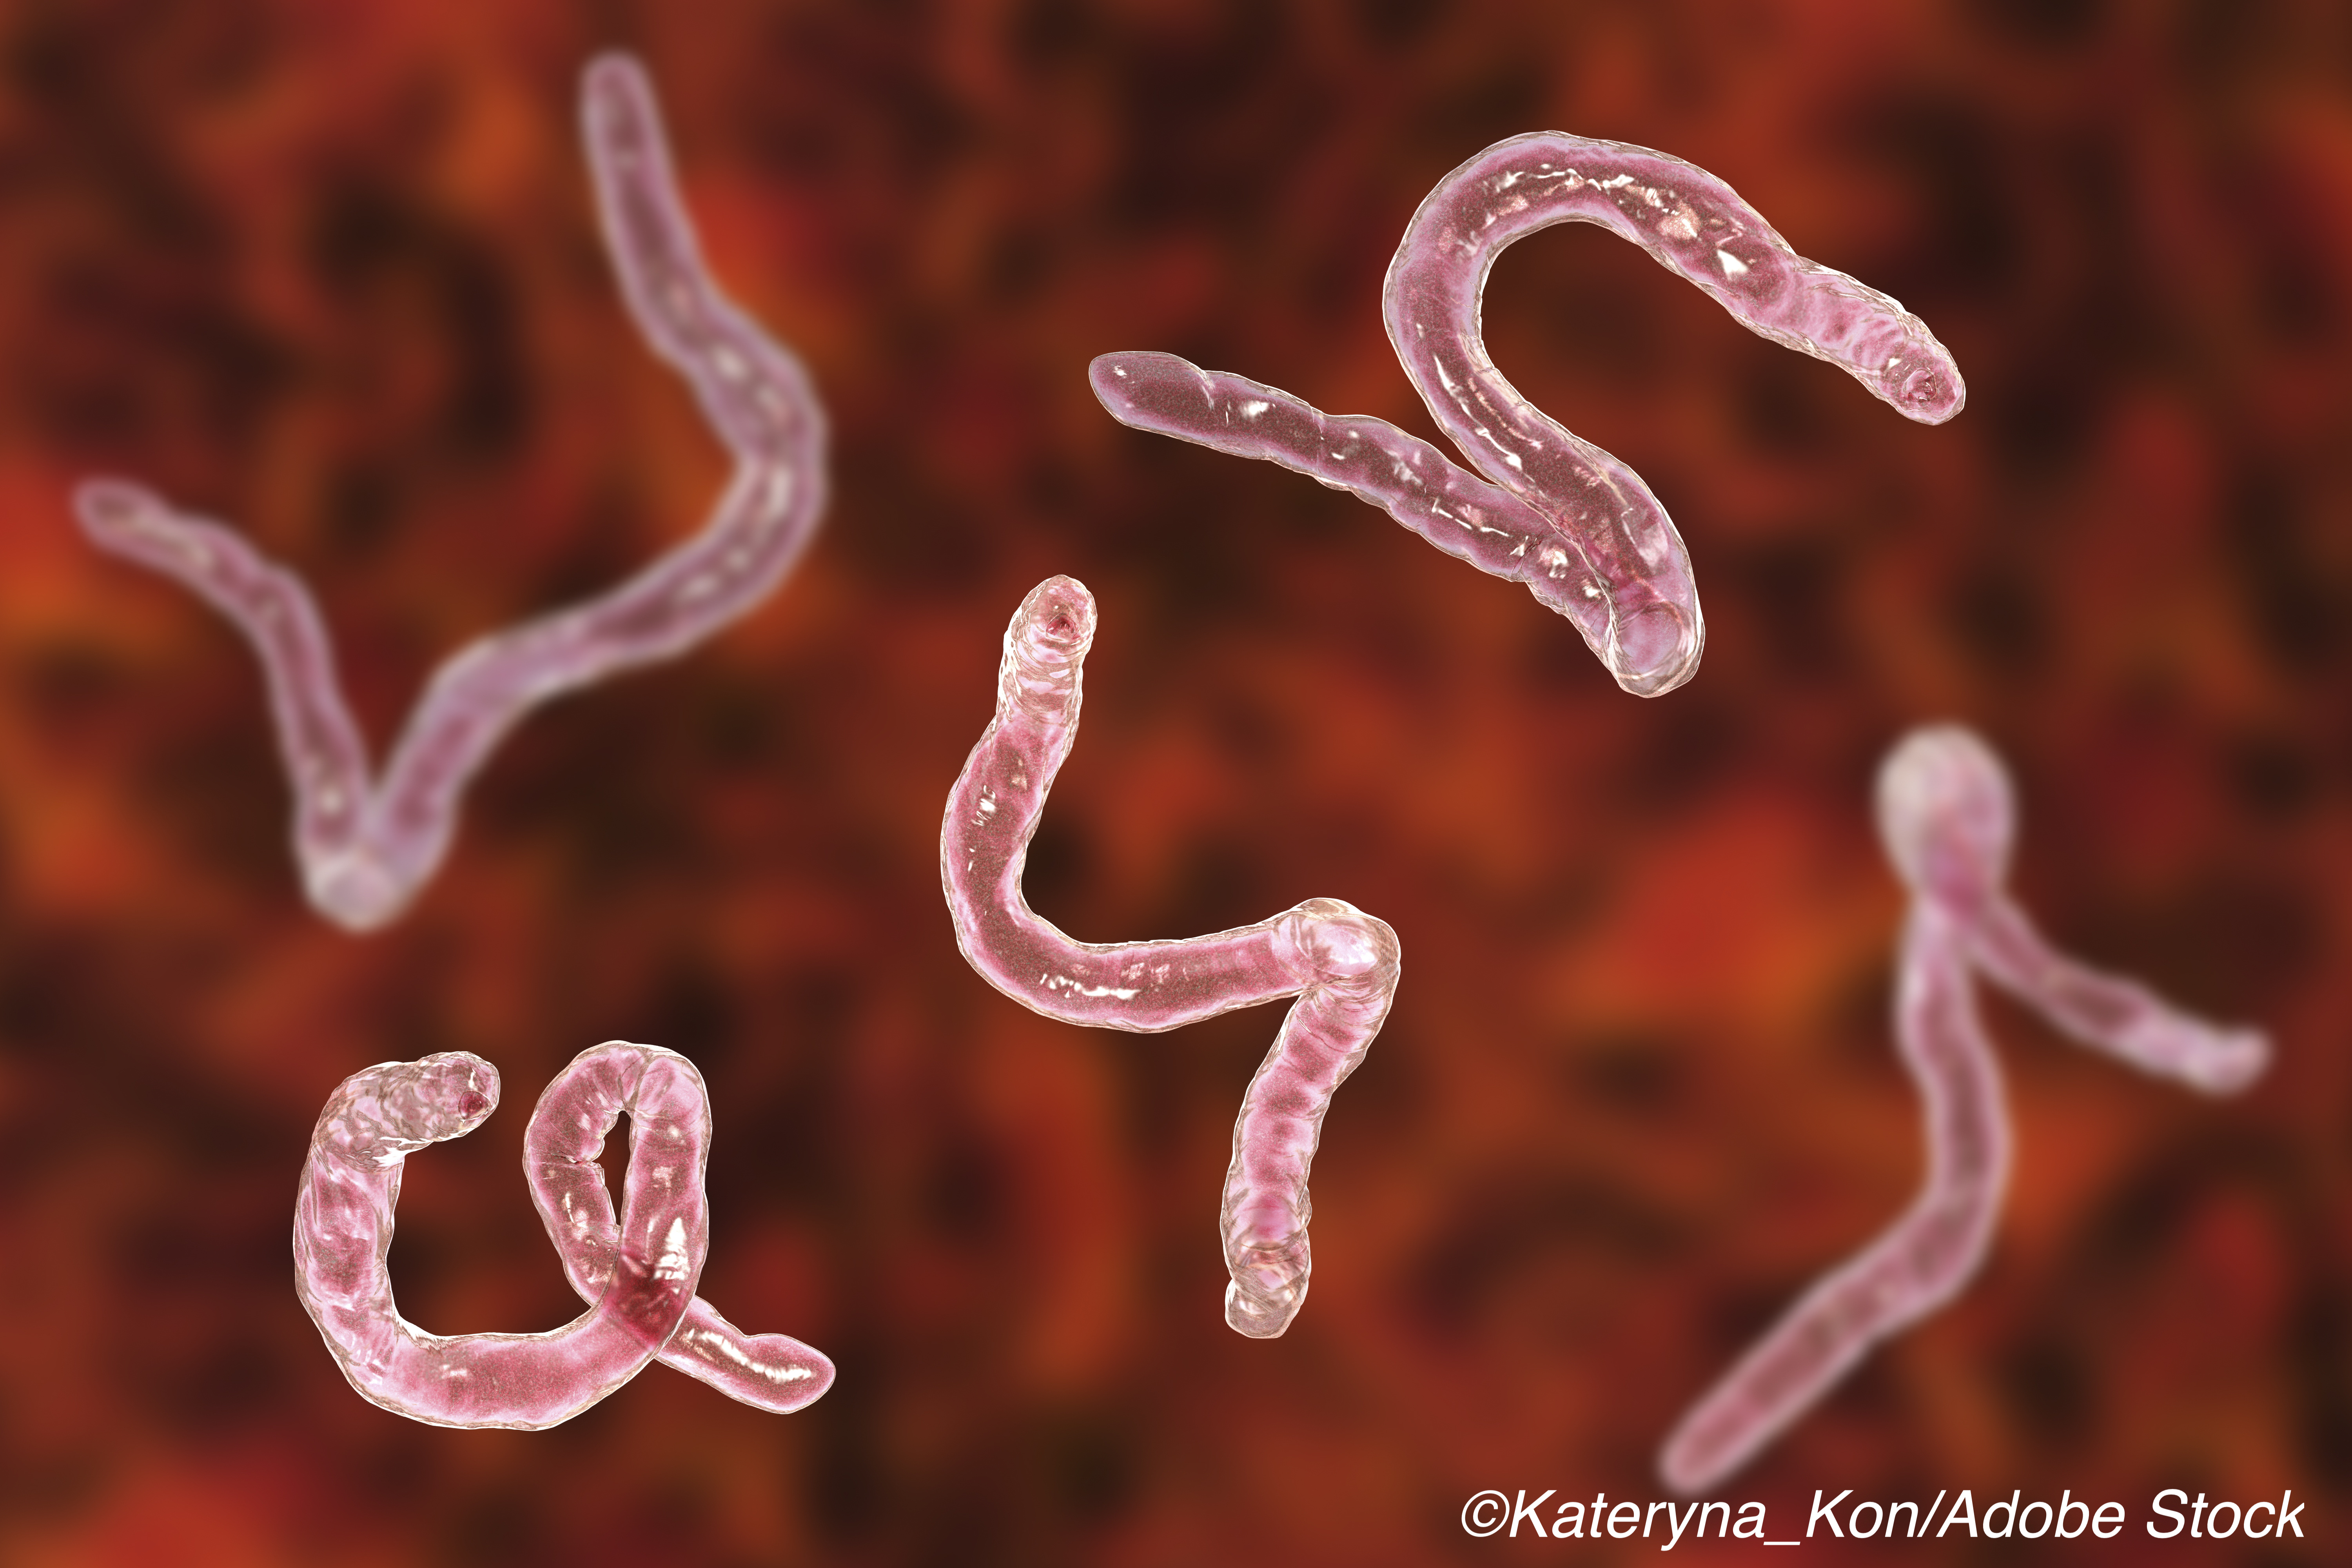 Hookworms: Not Likely to Wiggle Their Way into MS Therapy